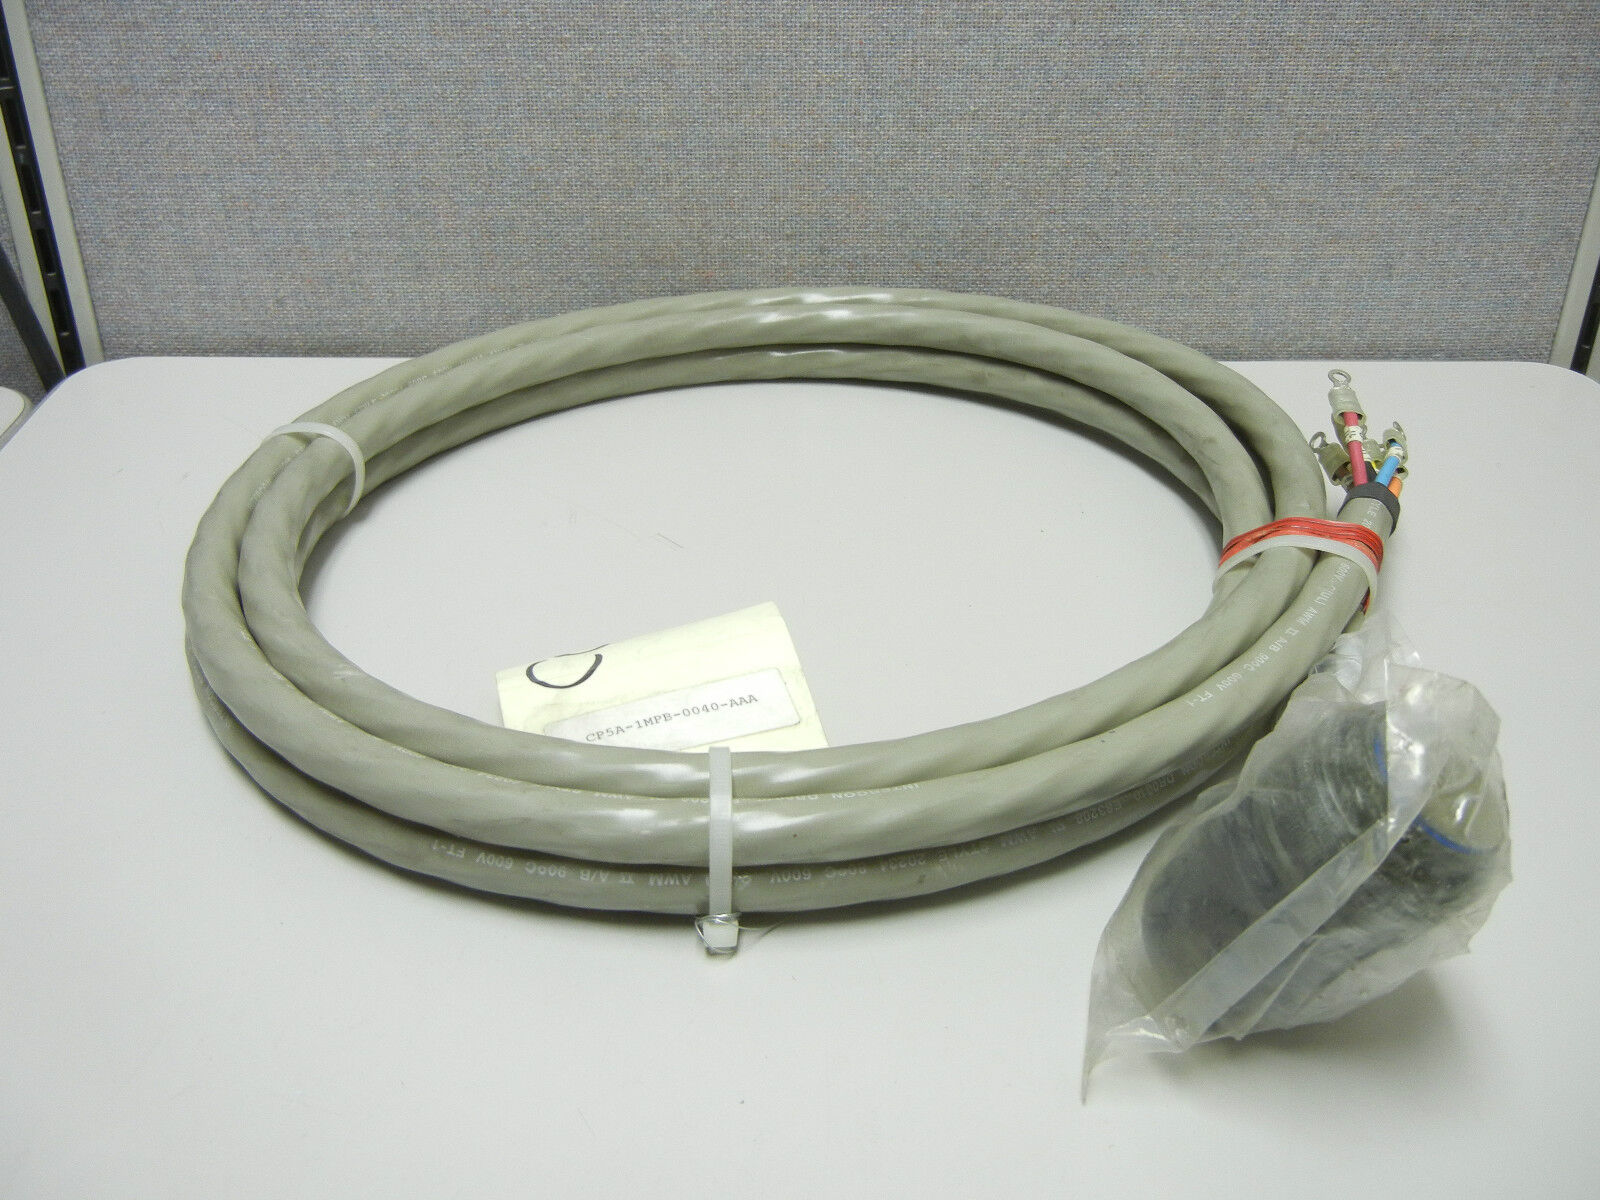 INTERCON CP5A-1MPB-0040-AAA NEW ROBOTIC CONTROL CABLE ASSEMBLY CP5A1MPB0040AAA